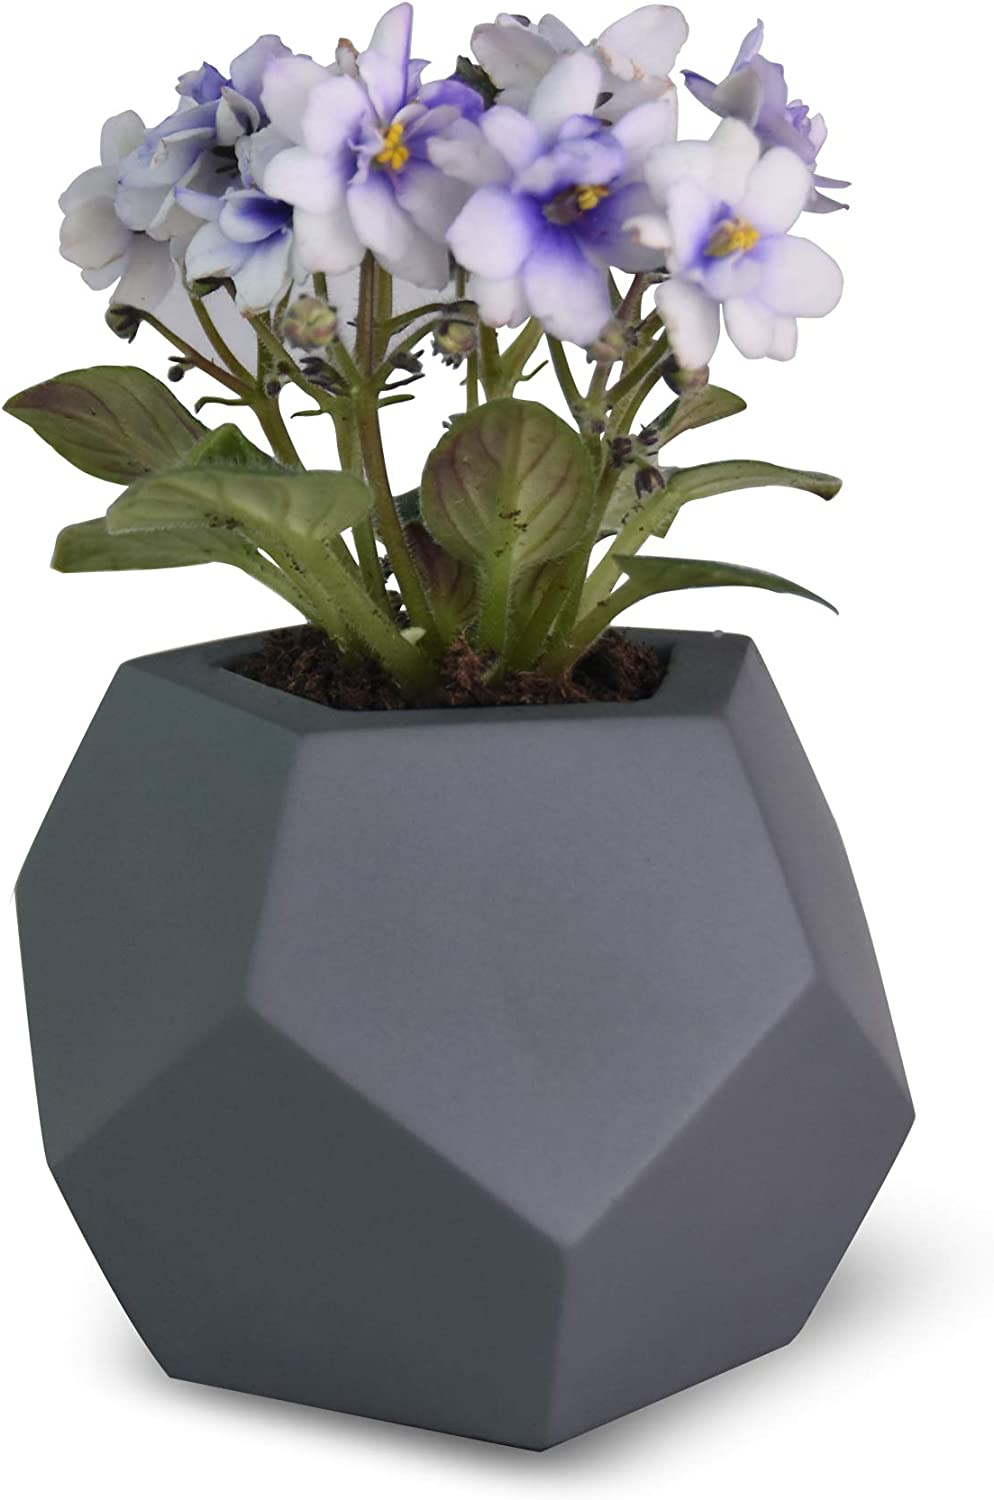 Flower Pots Garden Pot Planters Indoor Planter Modern Style Home Decoration, MuIti Size Select, Indoor Outdoor Succulent Pots for Plants,MODENO (3.5 x 3.5 x 2.9inch)